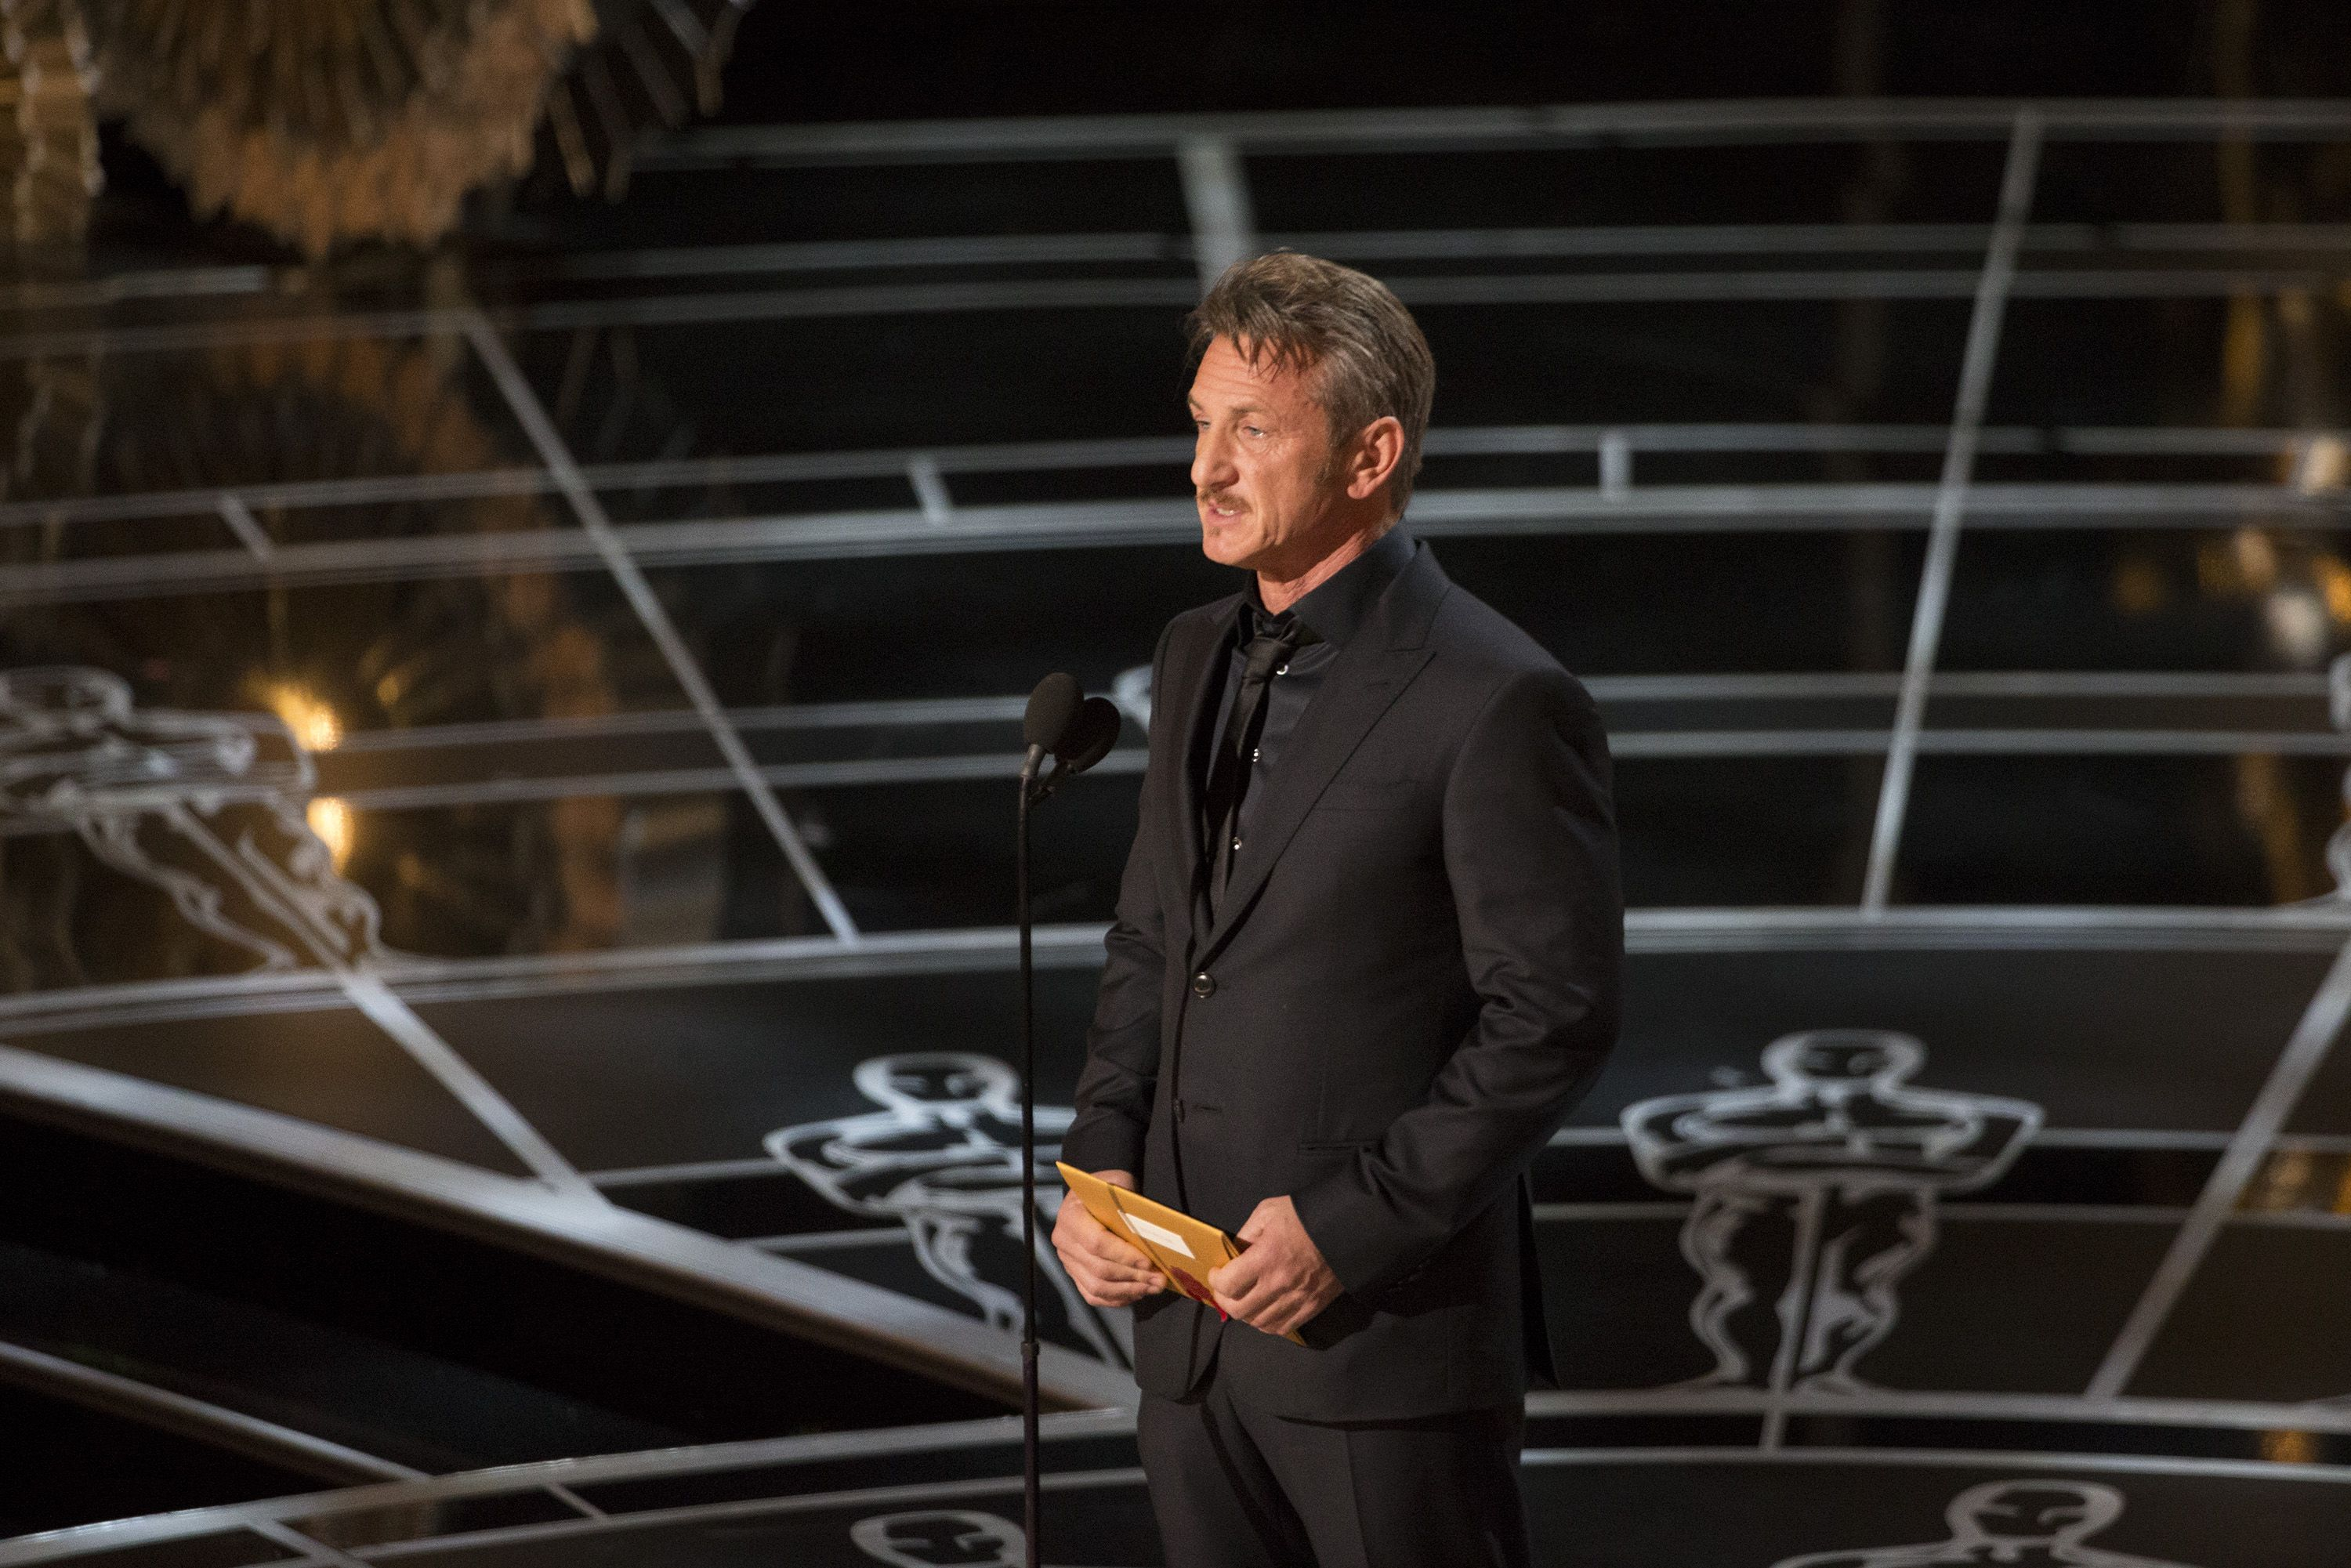 2015: When Sean Penn made a green card joke.